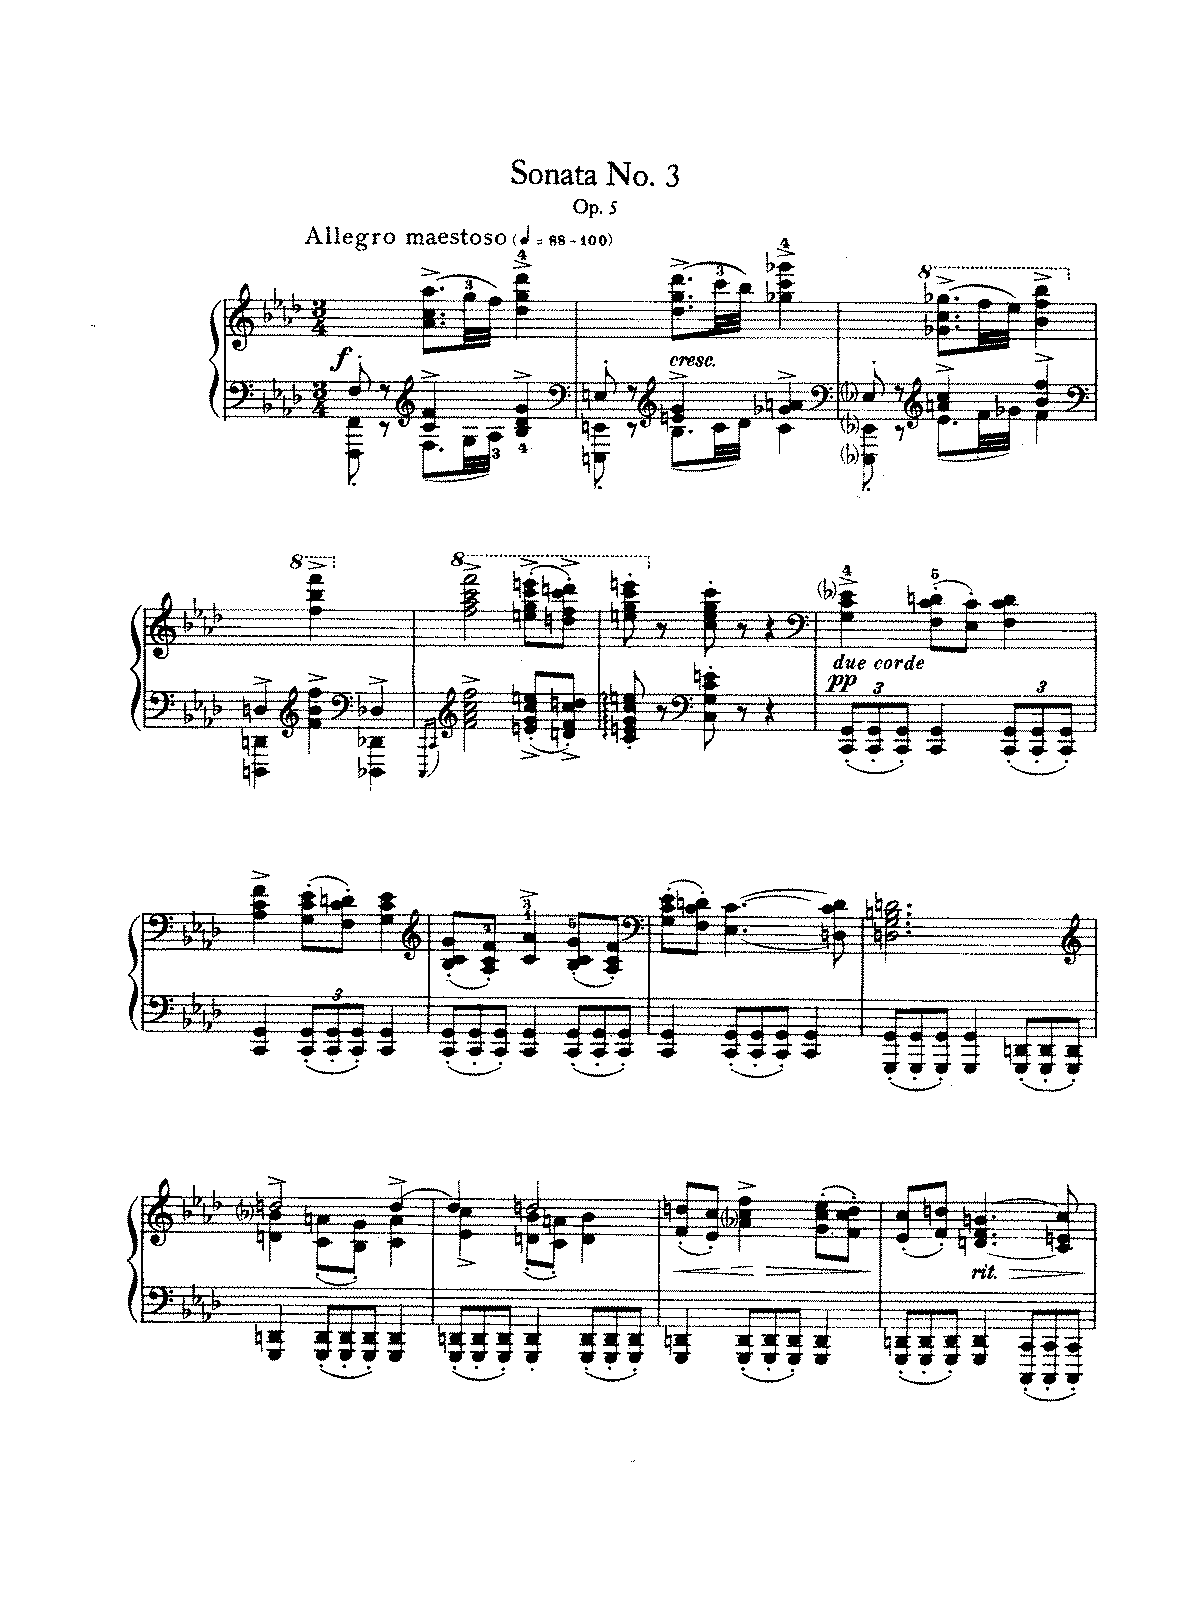 Brahms - Piano Sonata No 3 in f.pdf